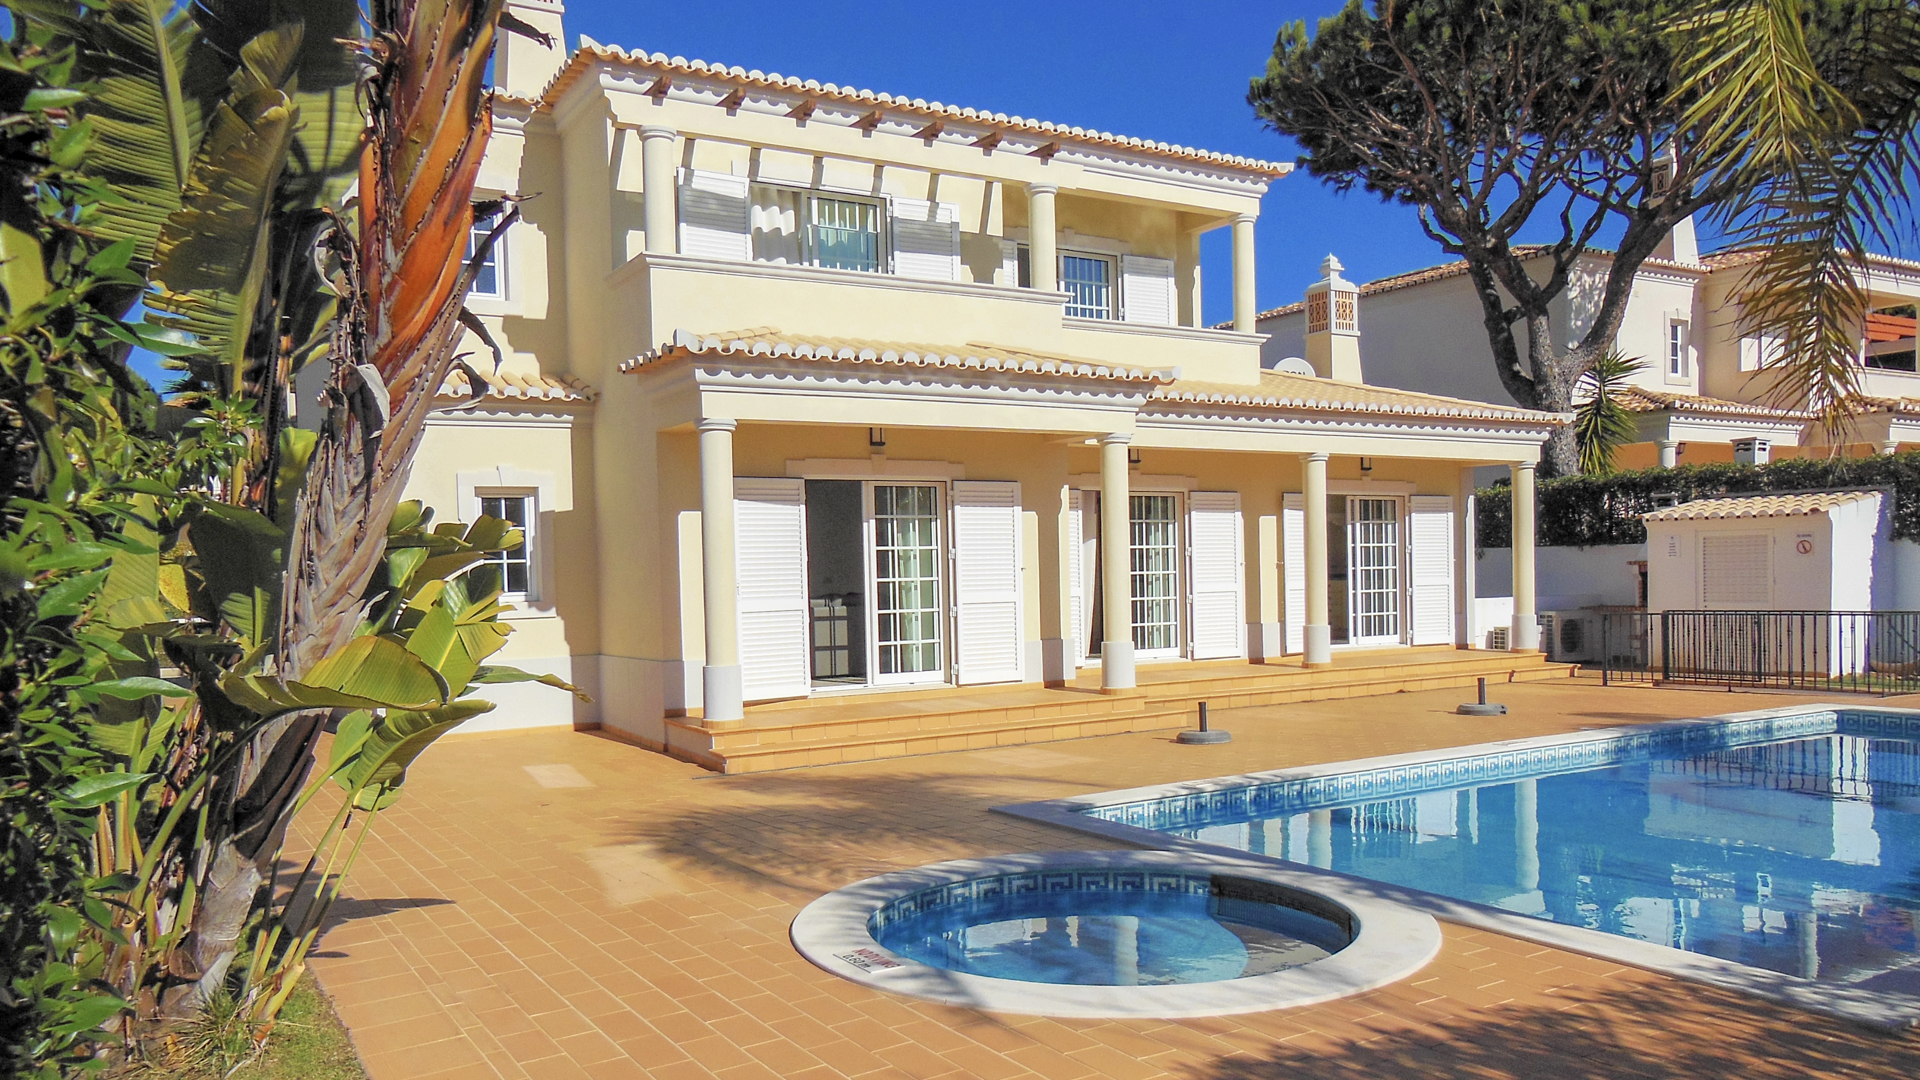 4 bedroom villa with pool, Varandas do Lago | SRB132 This 4 bedroom detached villa is located in Varandas do Lago, Golden Triangle. It has a private pool, a big living area, quality construction and finishings and a fully equipped kitchen.